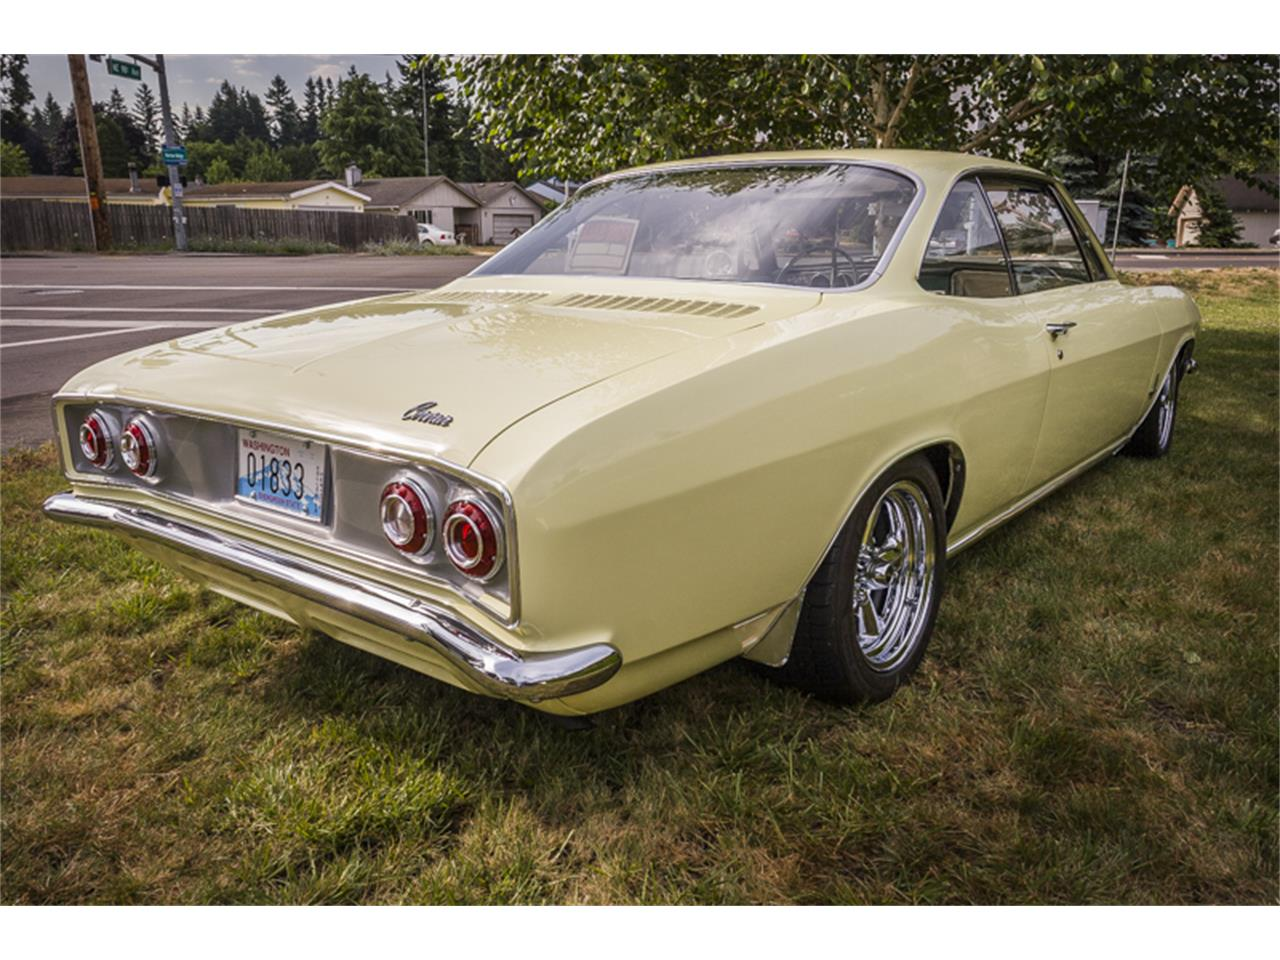 Large Picture of Classic '65 Corvair Monza - $10,500.00 Offered by a Private Seller - ETTM